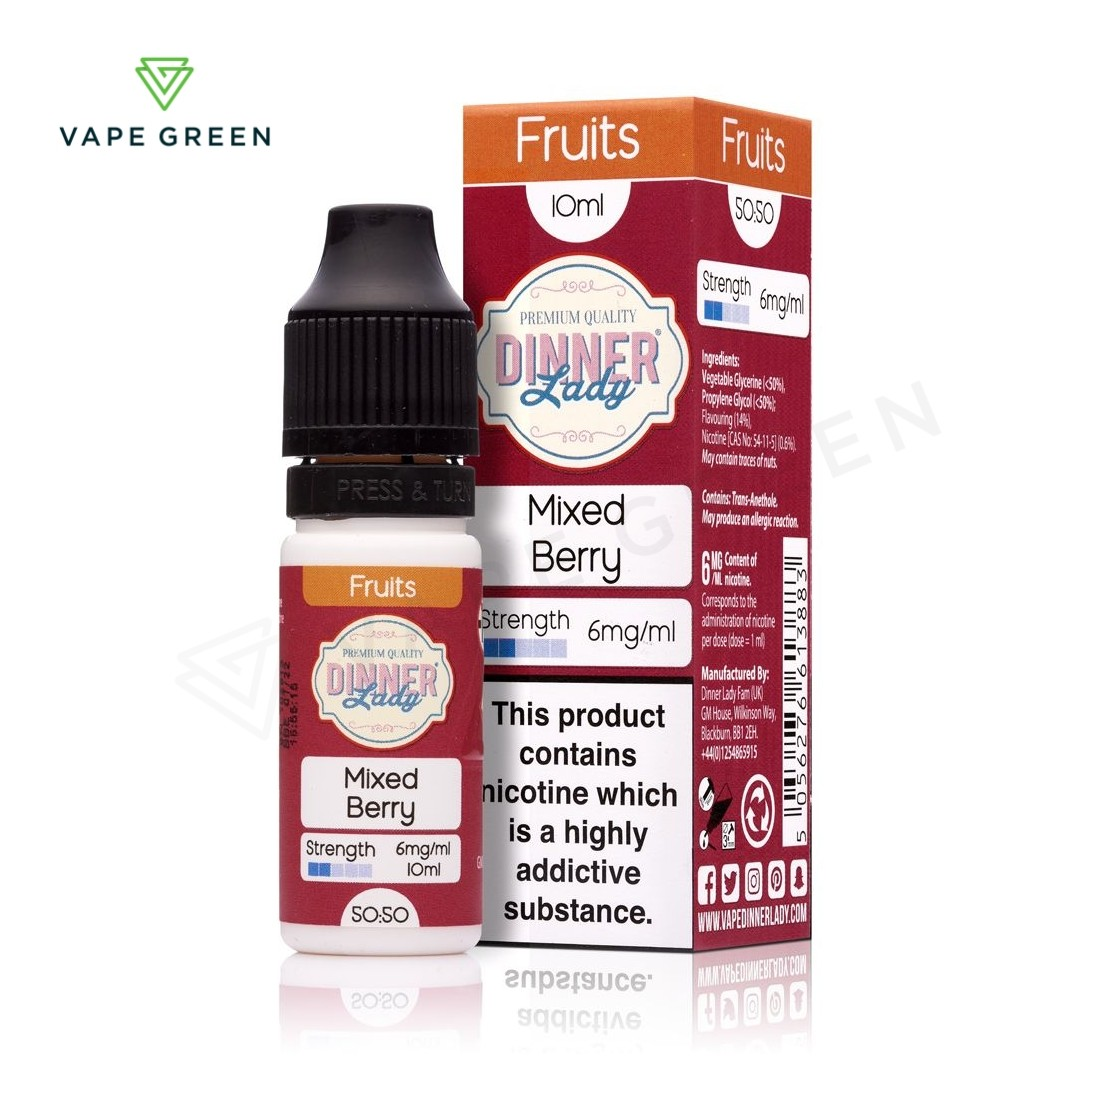 Mixed Berry E-Liquid by Dinner Lady Fruits 50/50